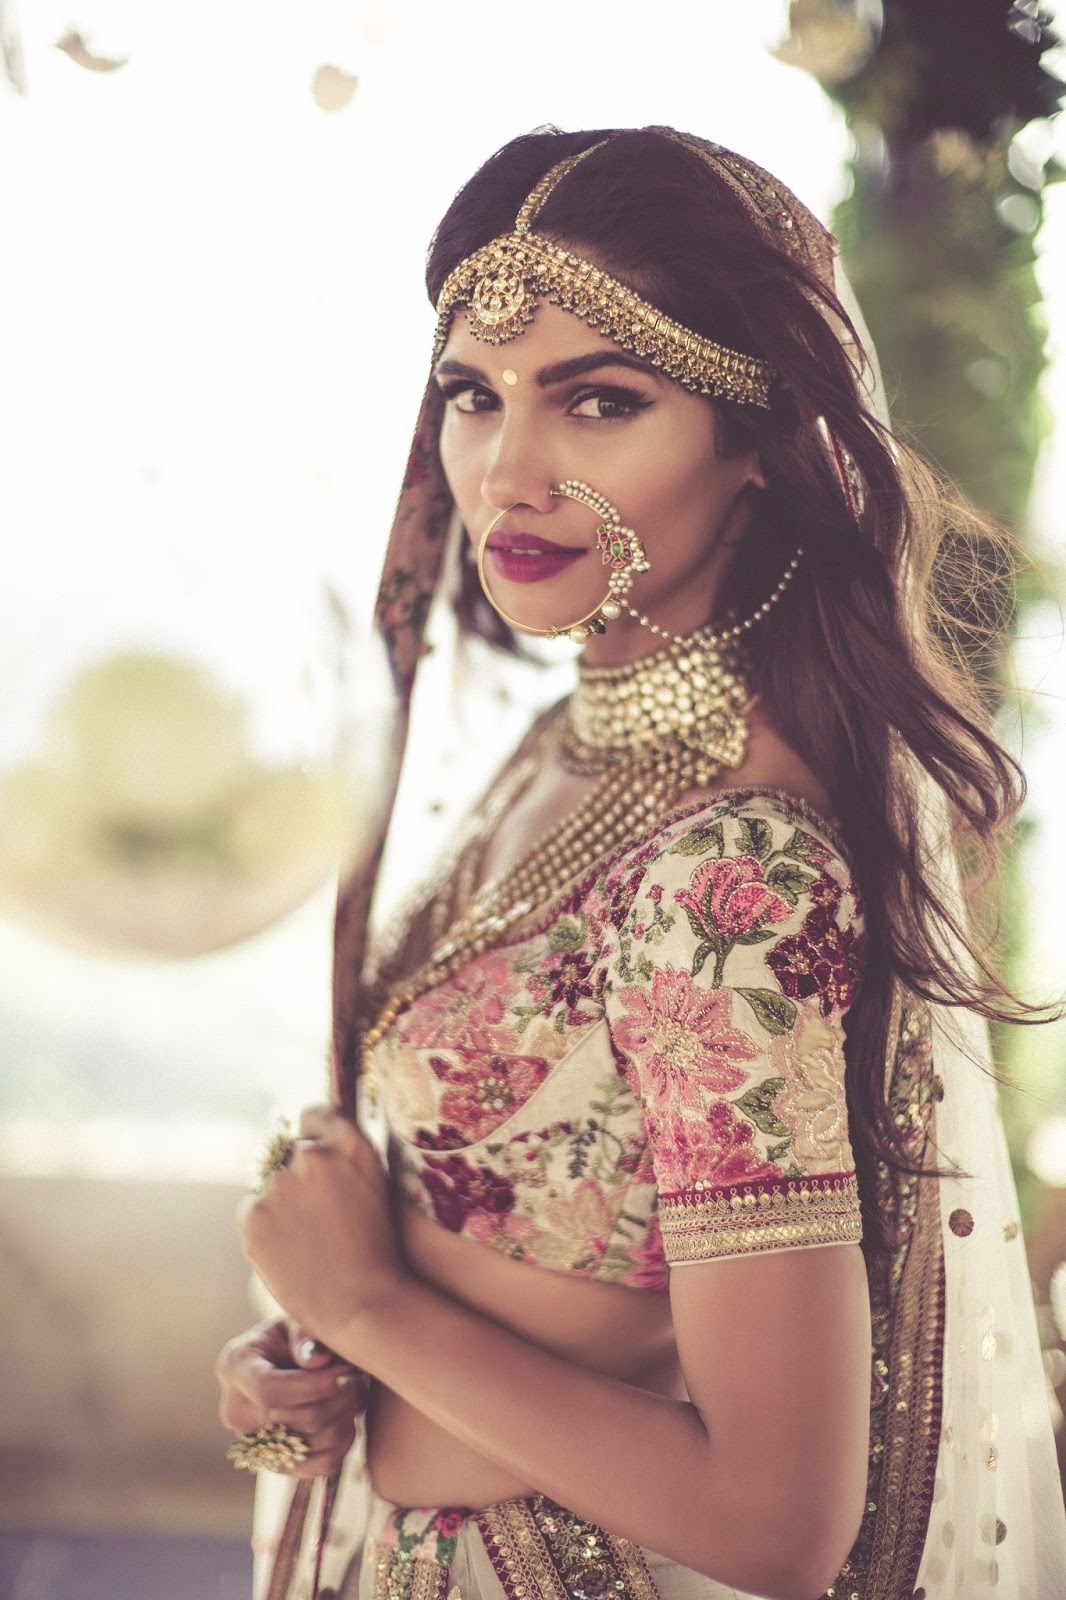 Guilty bytes indian fashion blogger delhi style blog beauty the wedding season is almost around the corner and with this comes the 4 th edition of vogue wedding show at taj palace hotel in new delhi junglespirit Image collections